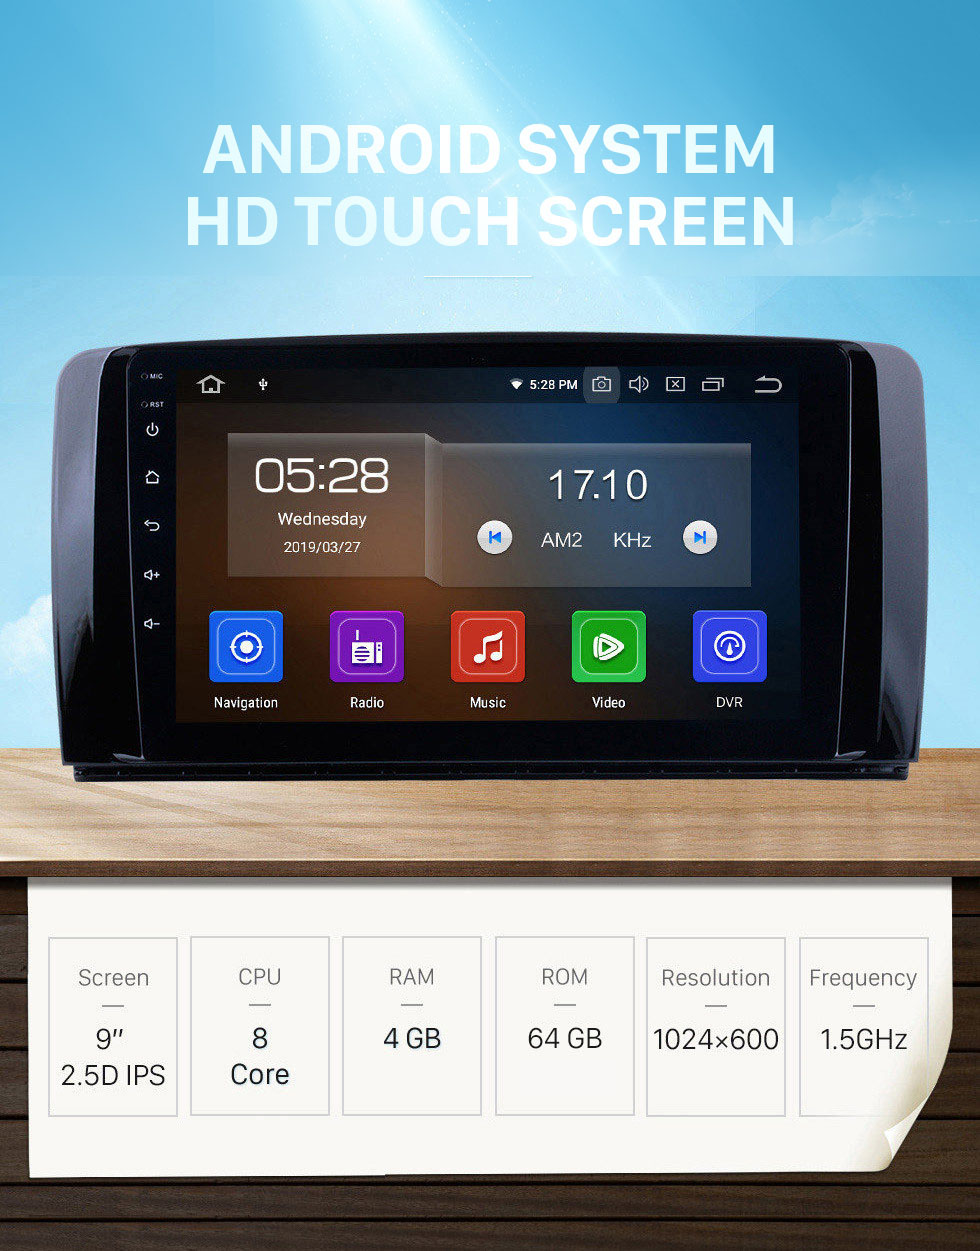 Seicane 9 Inch OEM Android 10.0 Radio Capacitive Touch Screen For 2006-2013 Mercedes Benz R Class W251 R280 R300 R320 R350 R63 Support 3G WiFi Bluetooth GPS Navigation system TPMS DVR OBD II AUX Headrest Monitor Control Video Rear camera USB SD